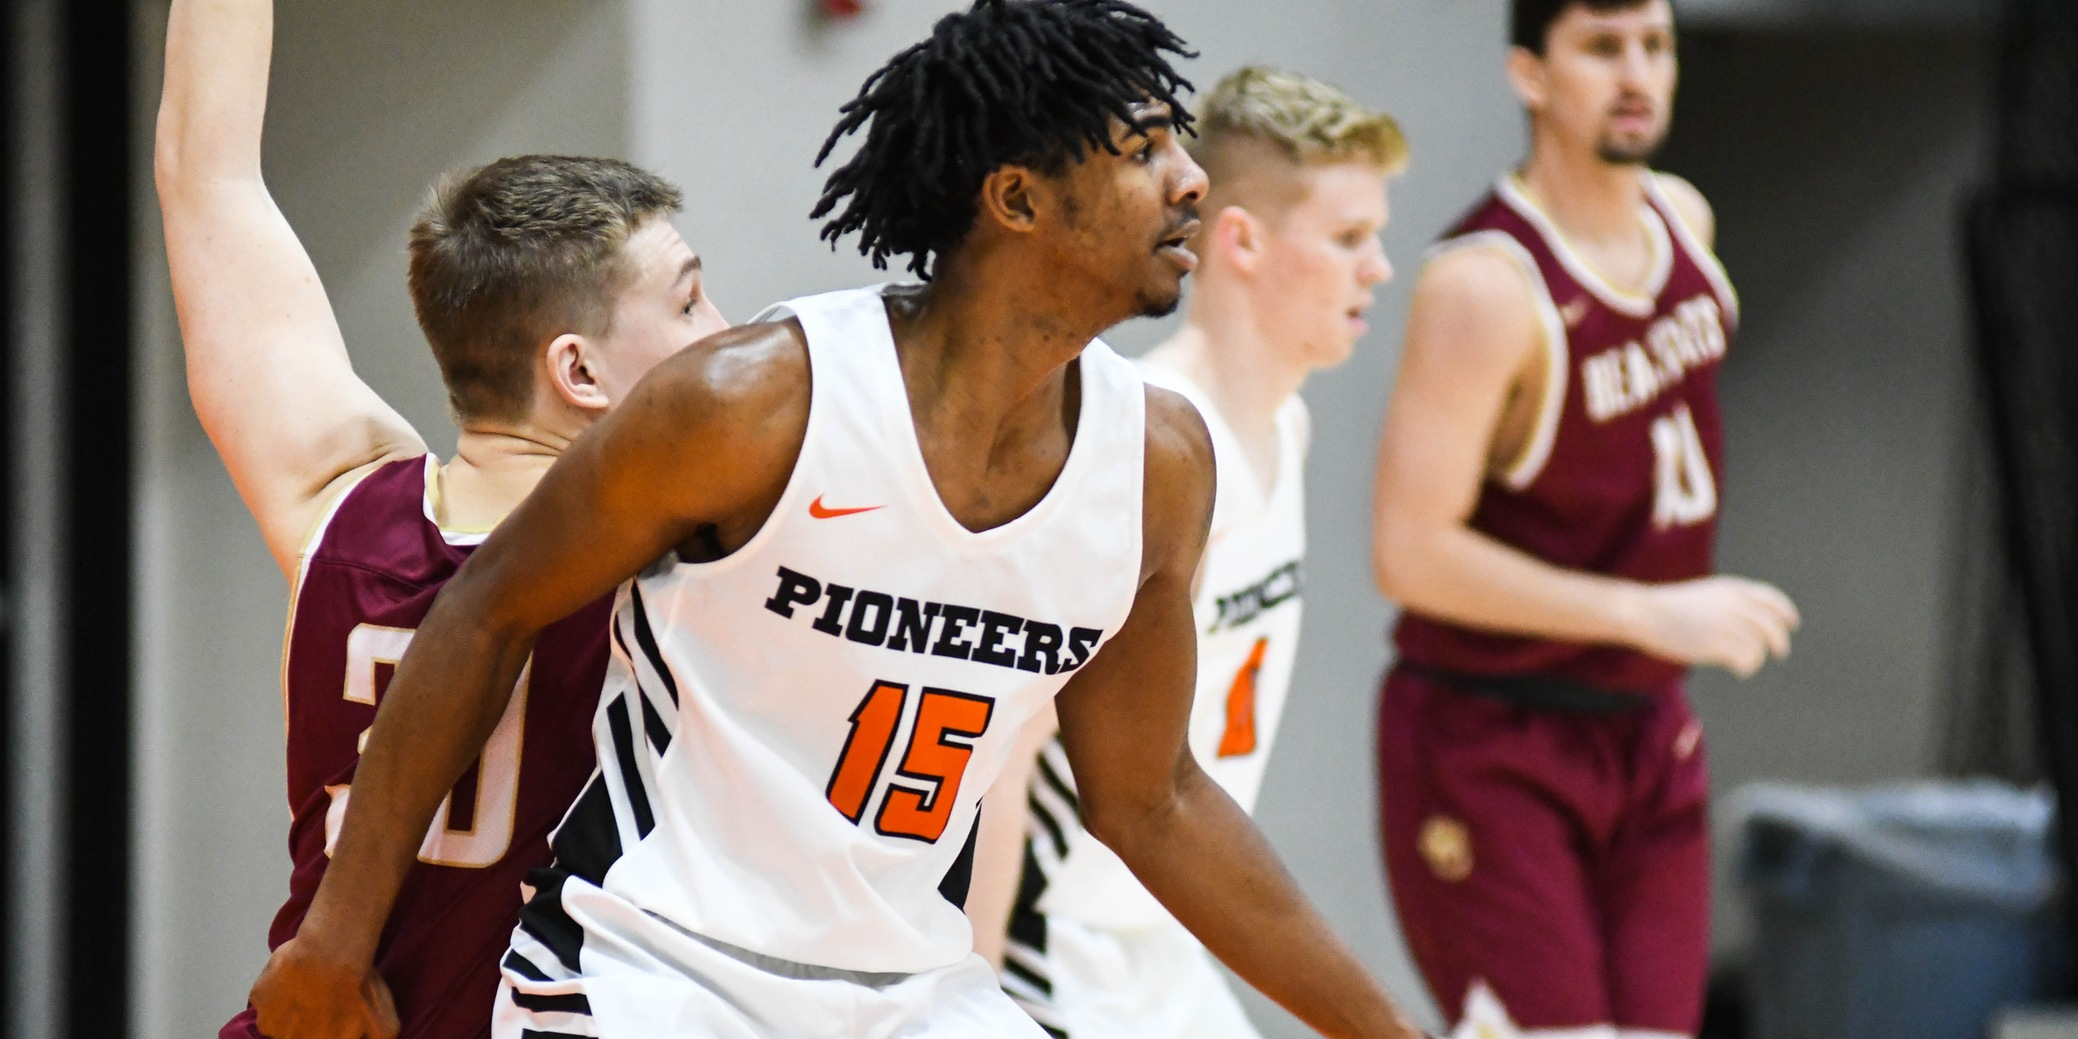 Strong first half leads Pioneers to first conference win